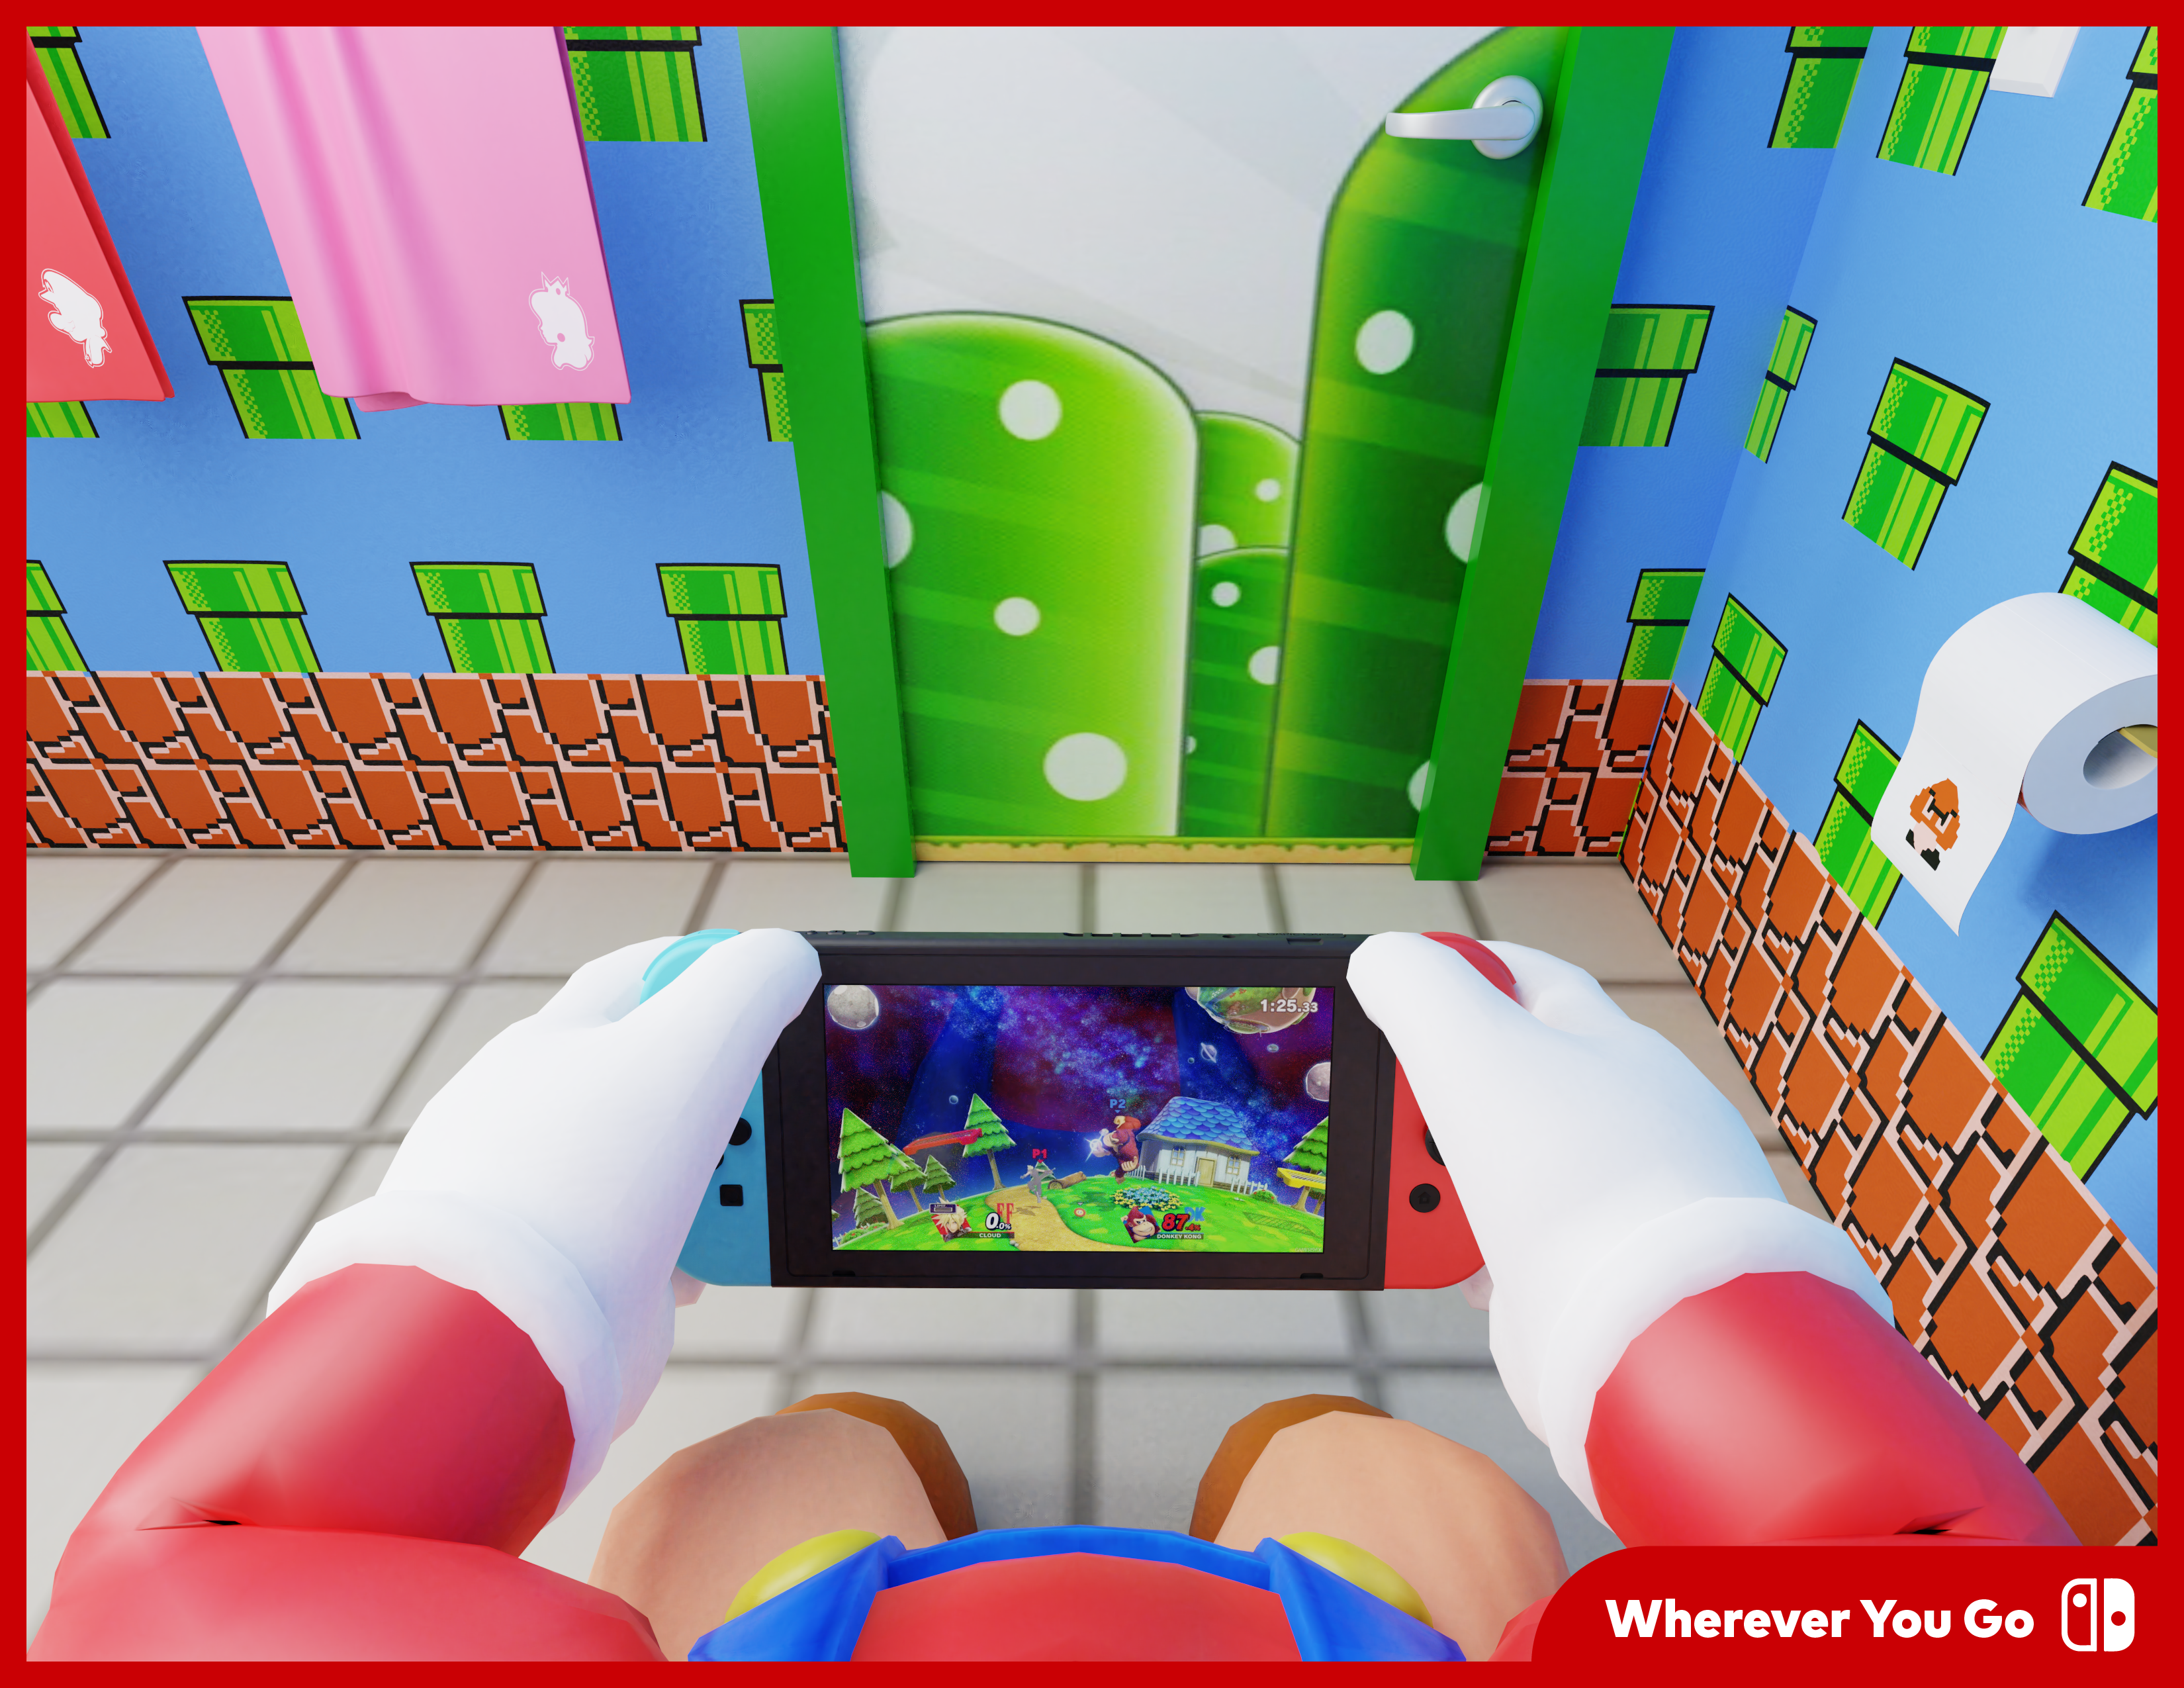 Nintendo Switch – Wherever You Go - One and a Half Brazilians